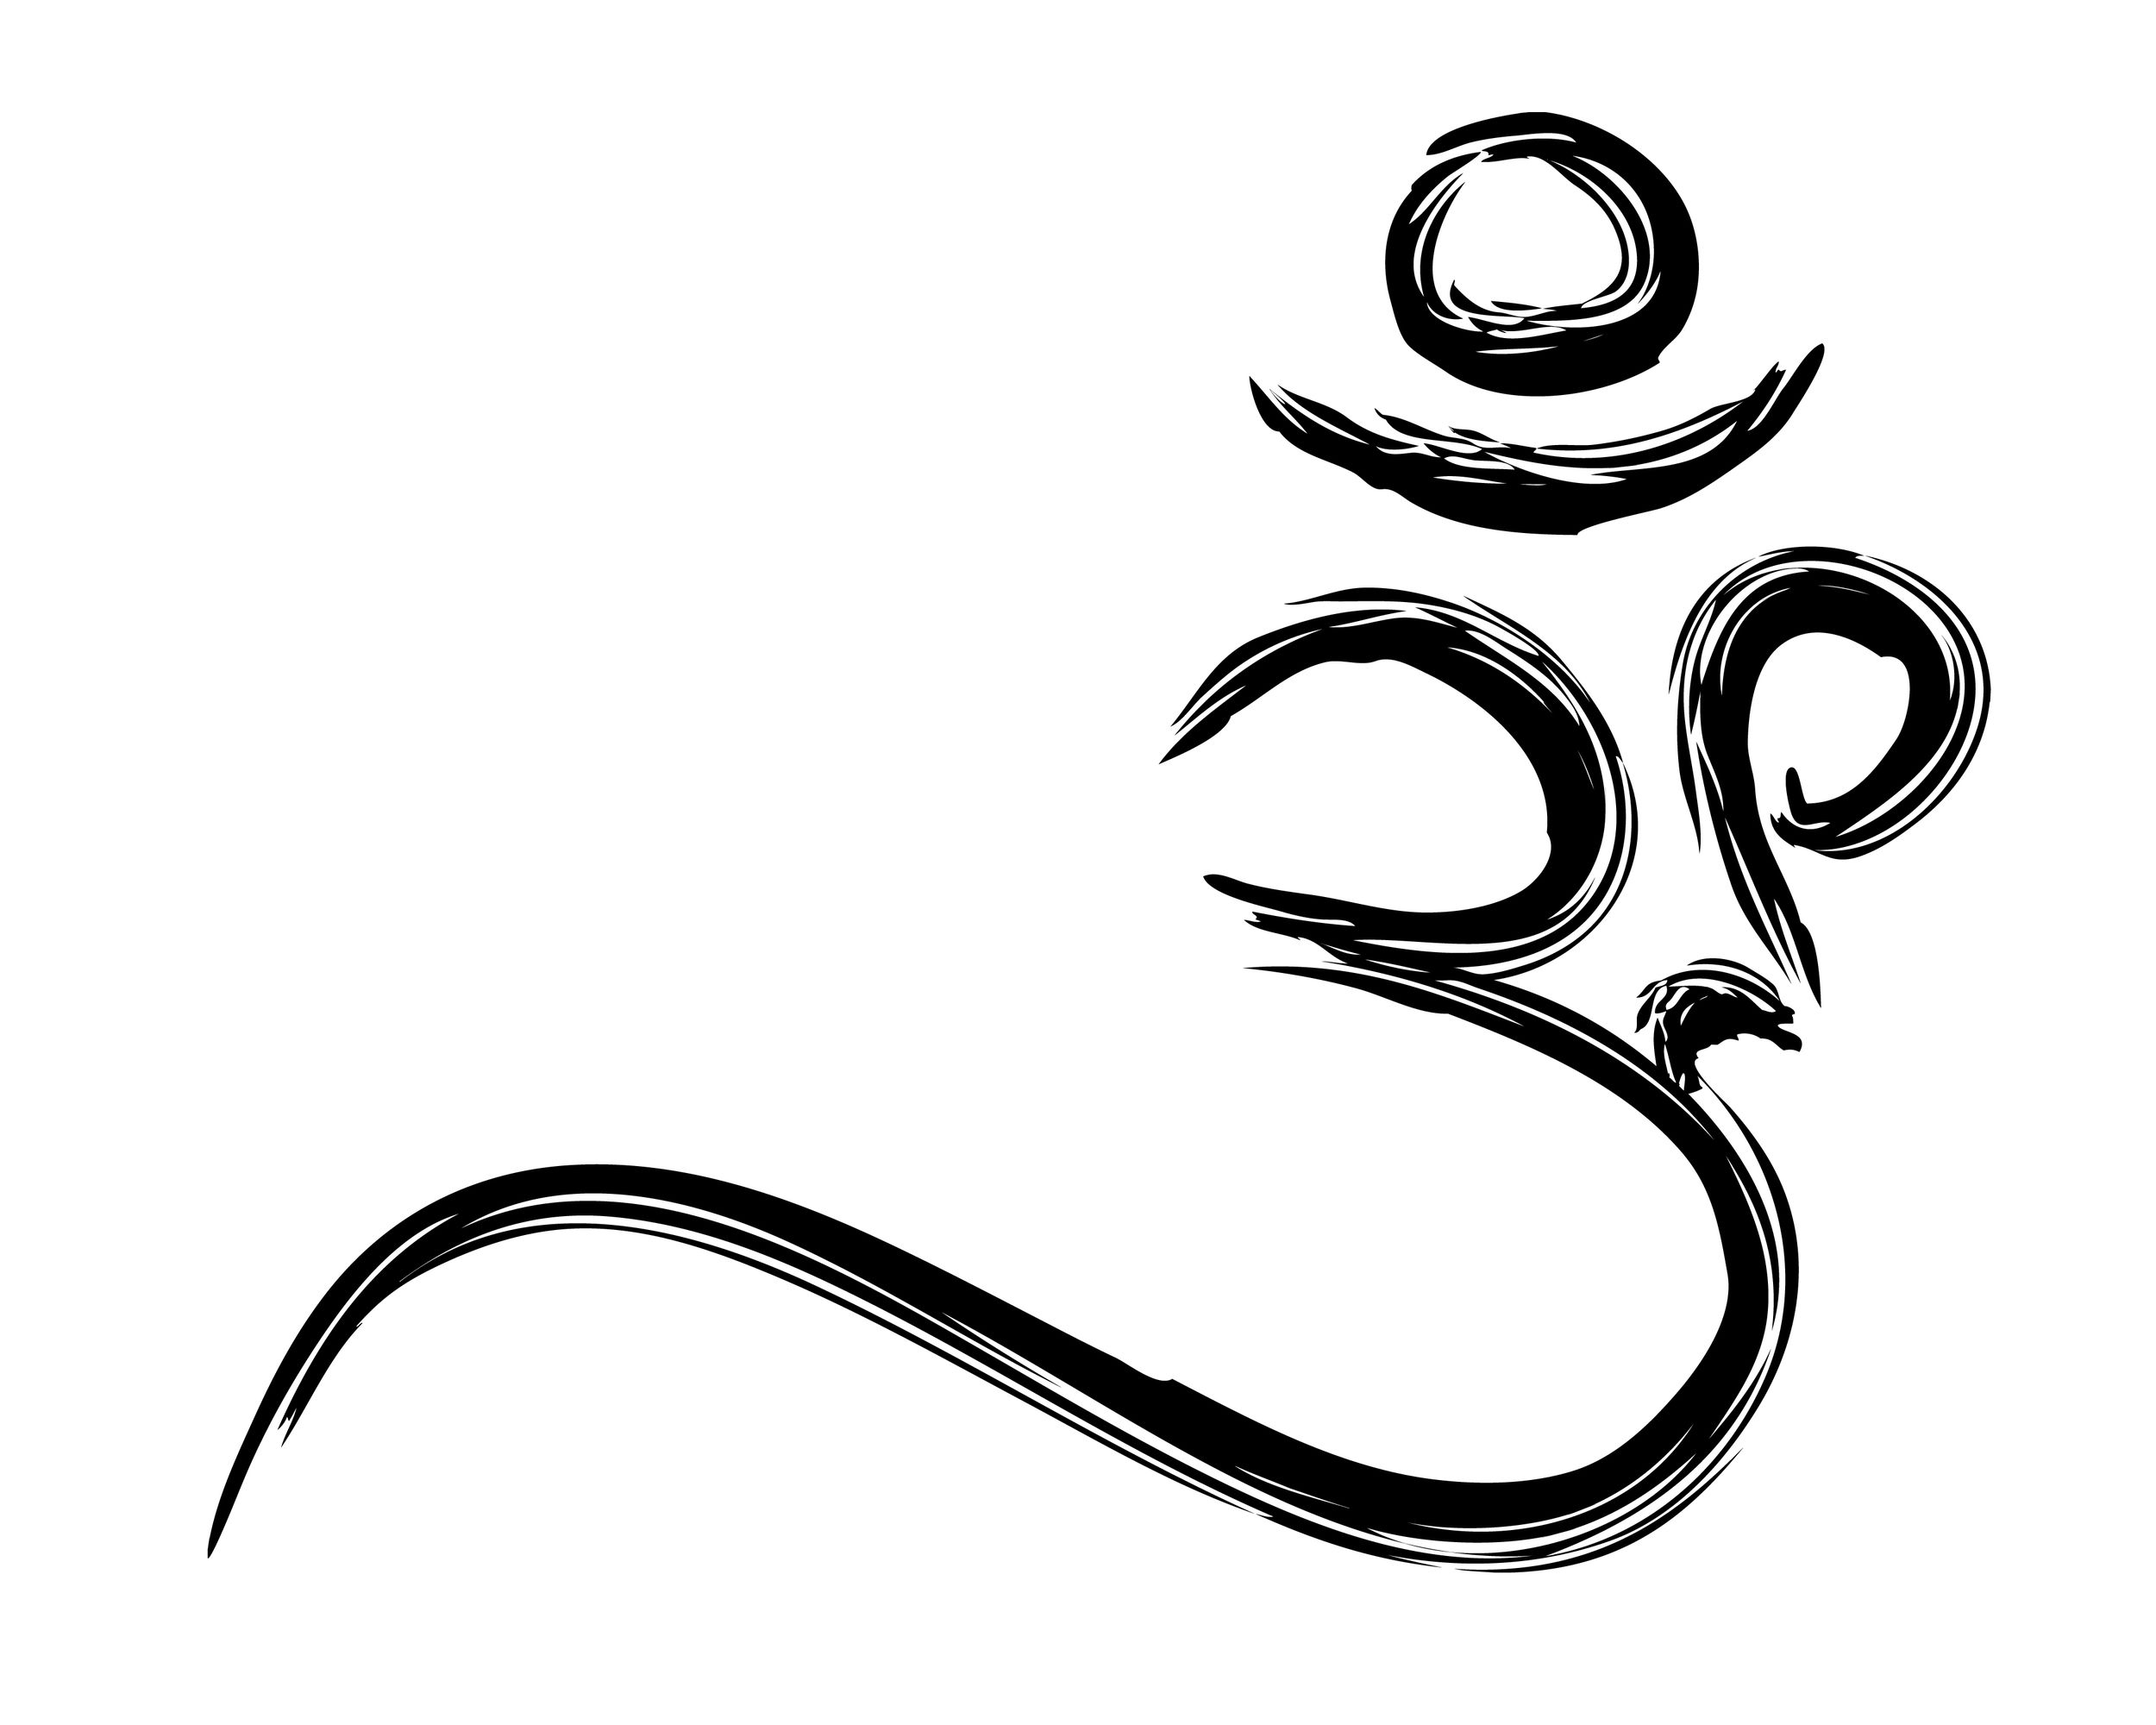 17 Best images about OM Tattoo on Pinterest | Ink, Sanskrit and ...